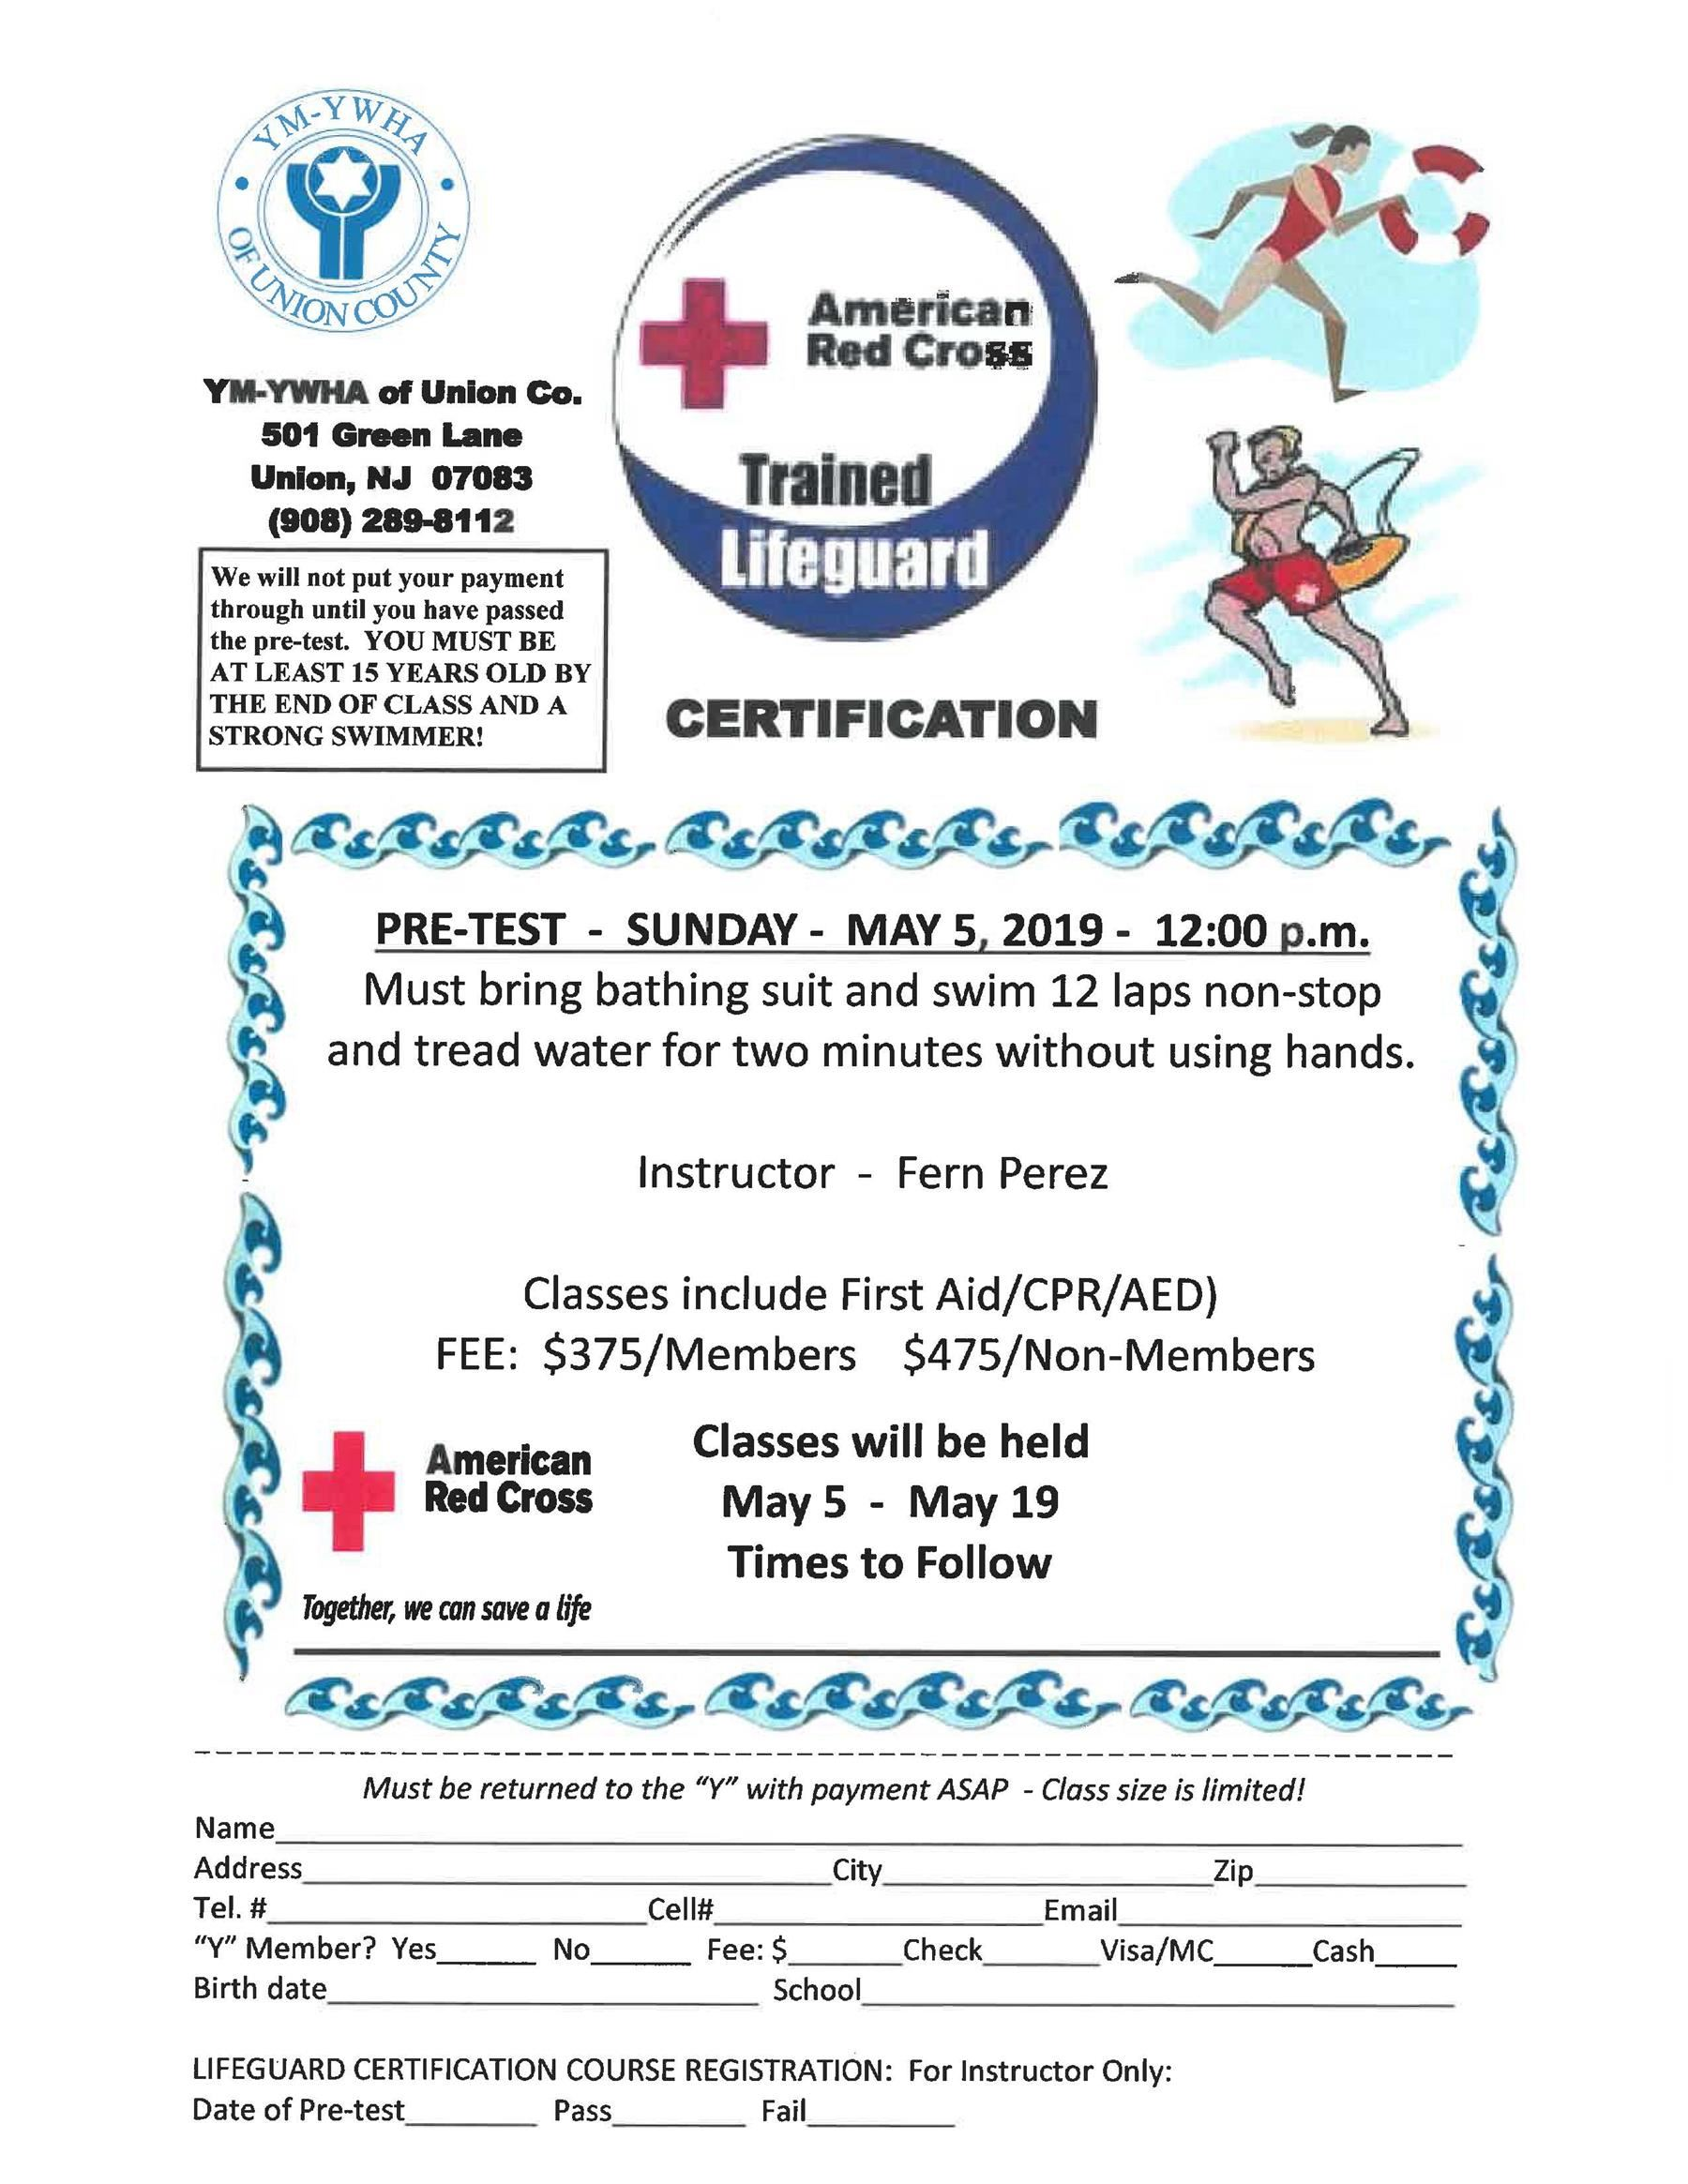 American Redcross Trained Lifegurad Certification